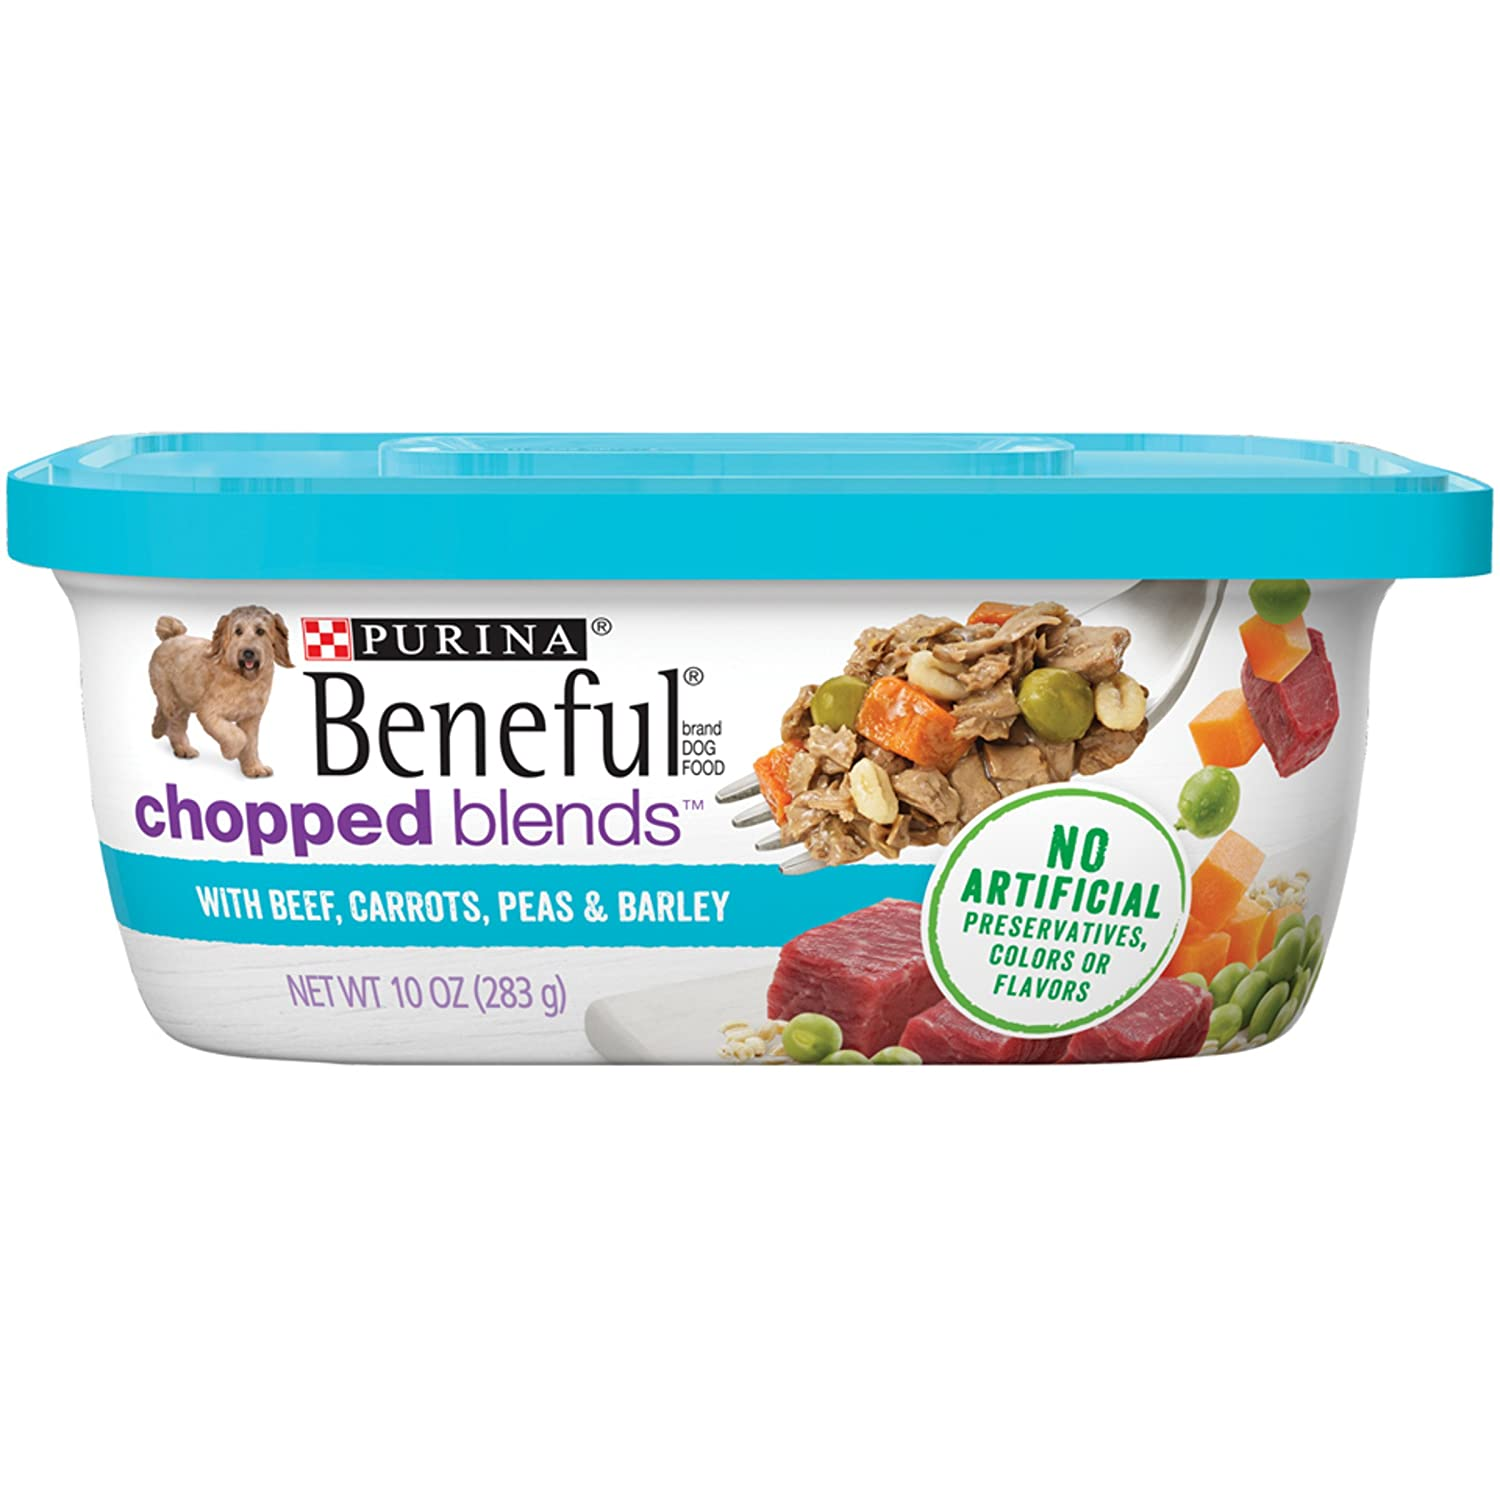 Amazon.com : Purina Beneful Chopped Blends with Beef Carrots Peas ...